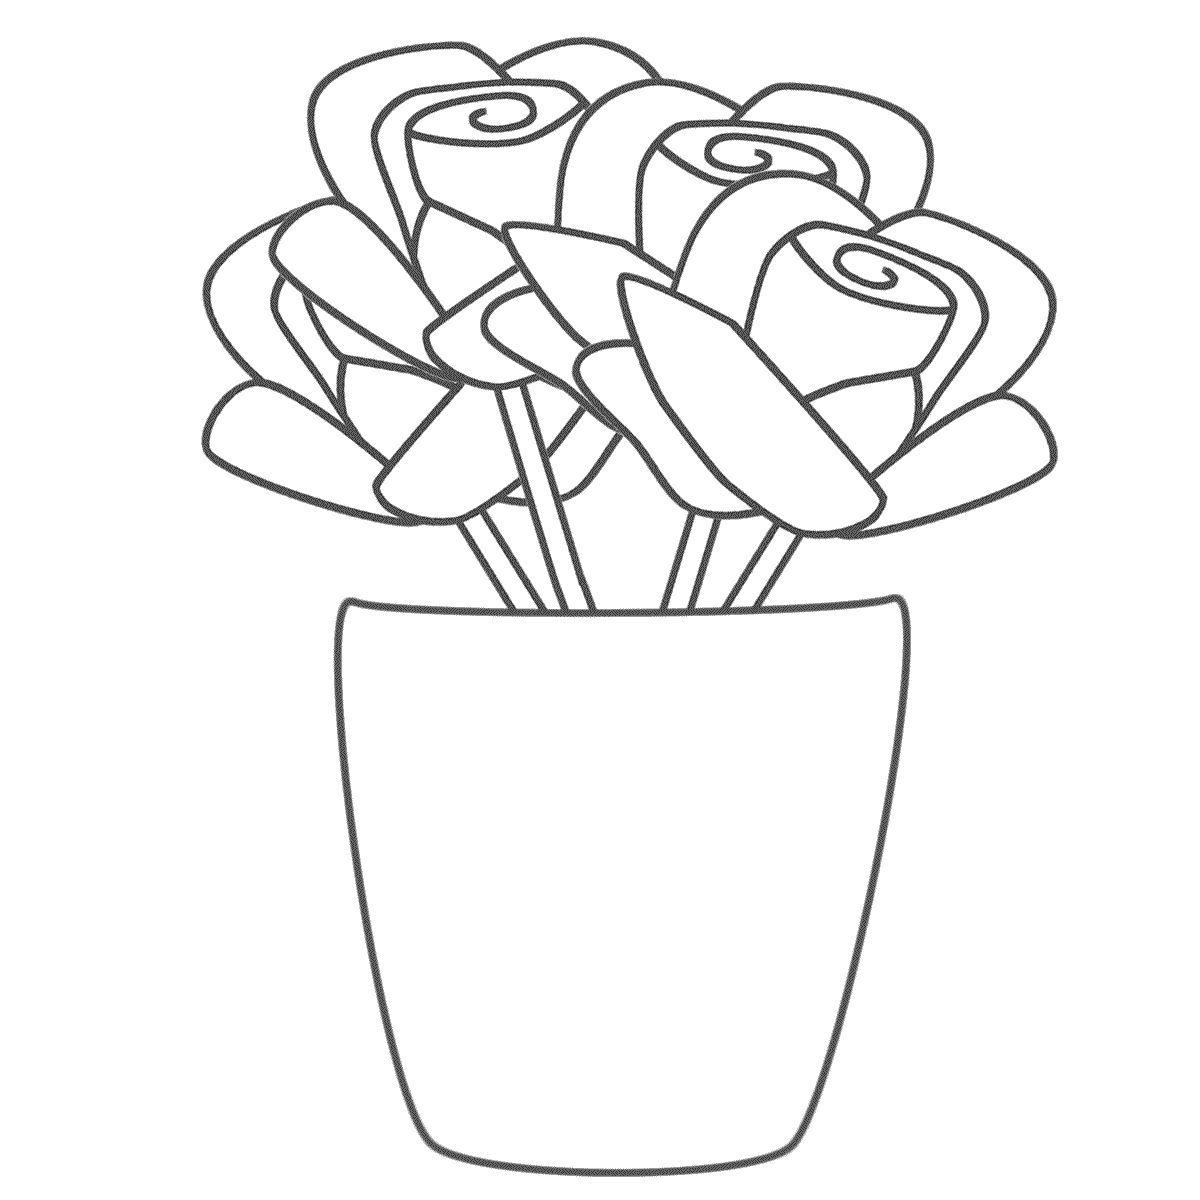 Free Printable Roses Coloring Pages For Kids Sketch Coloring Page ...